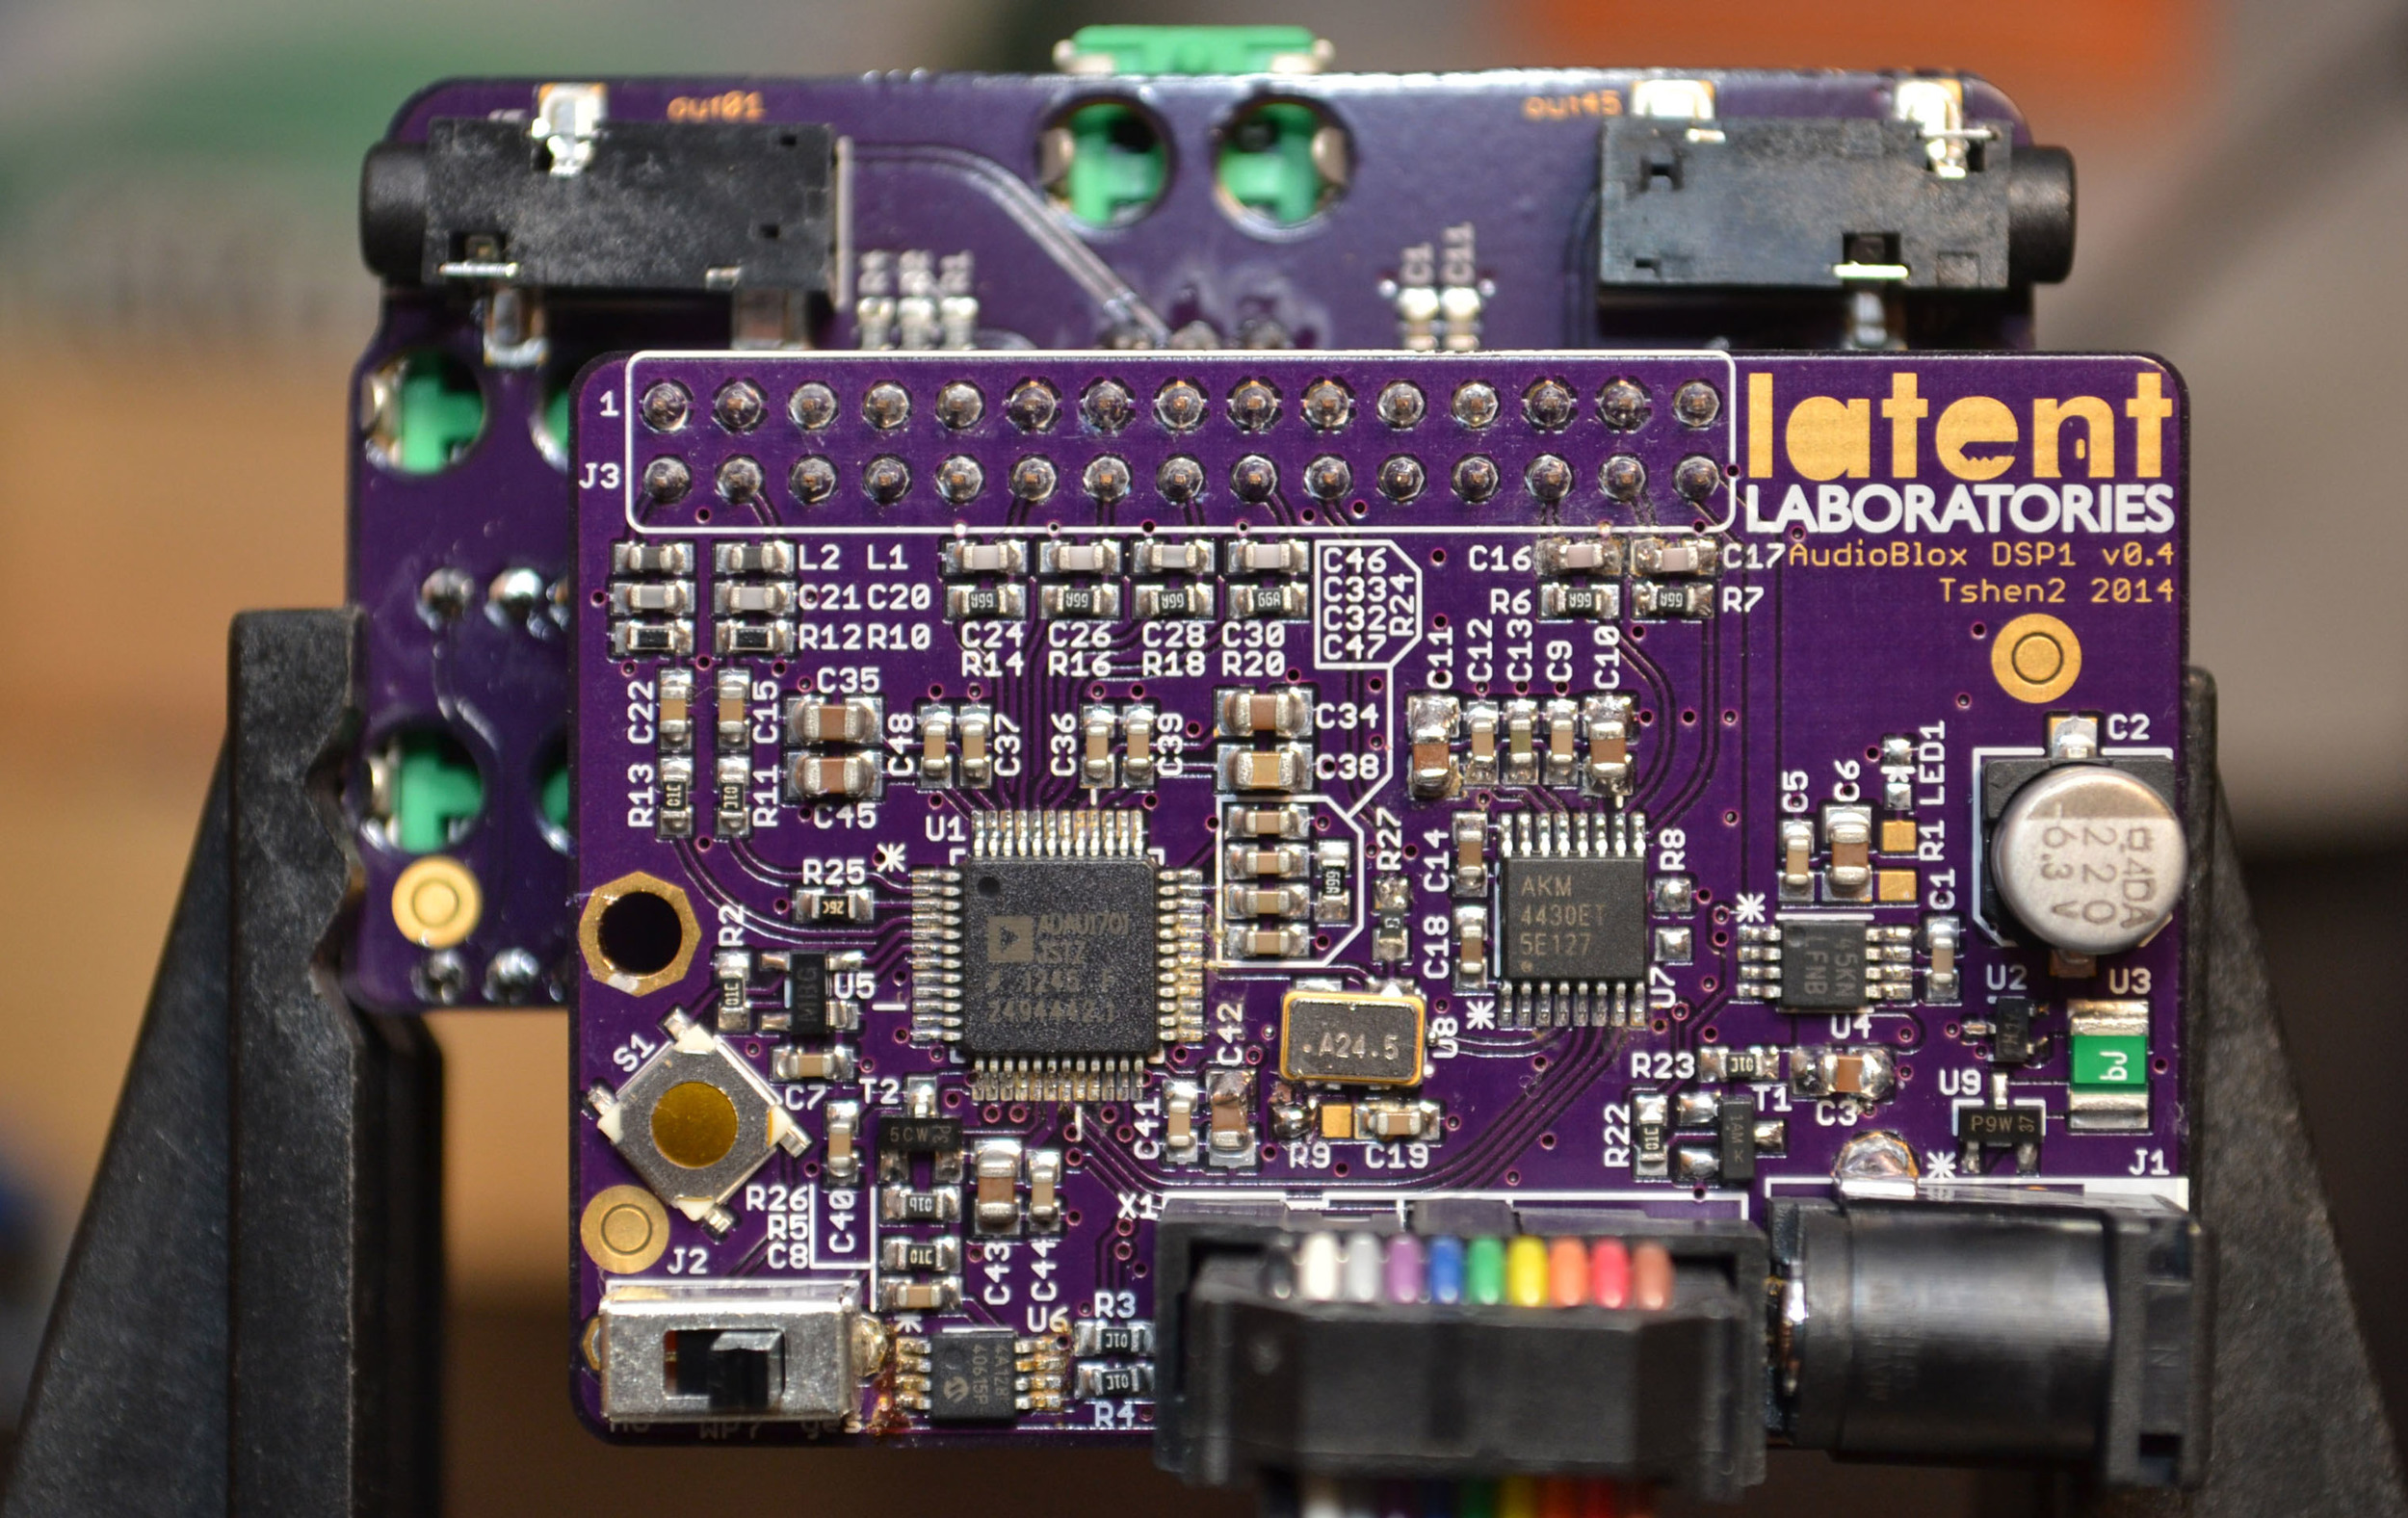 and a DSP 01 board at the back!